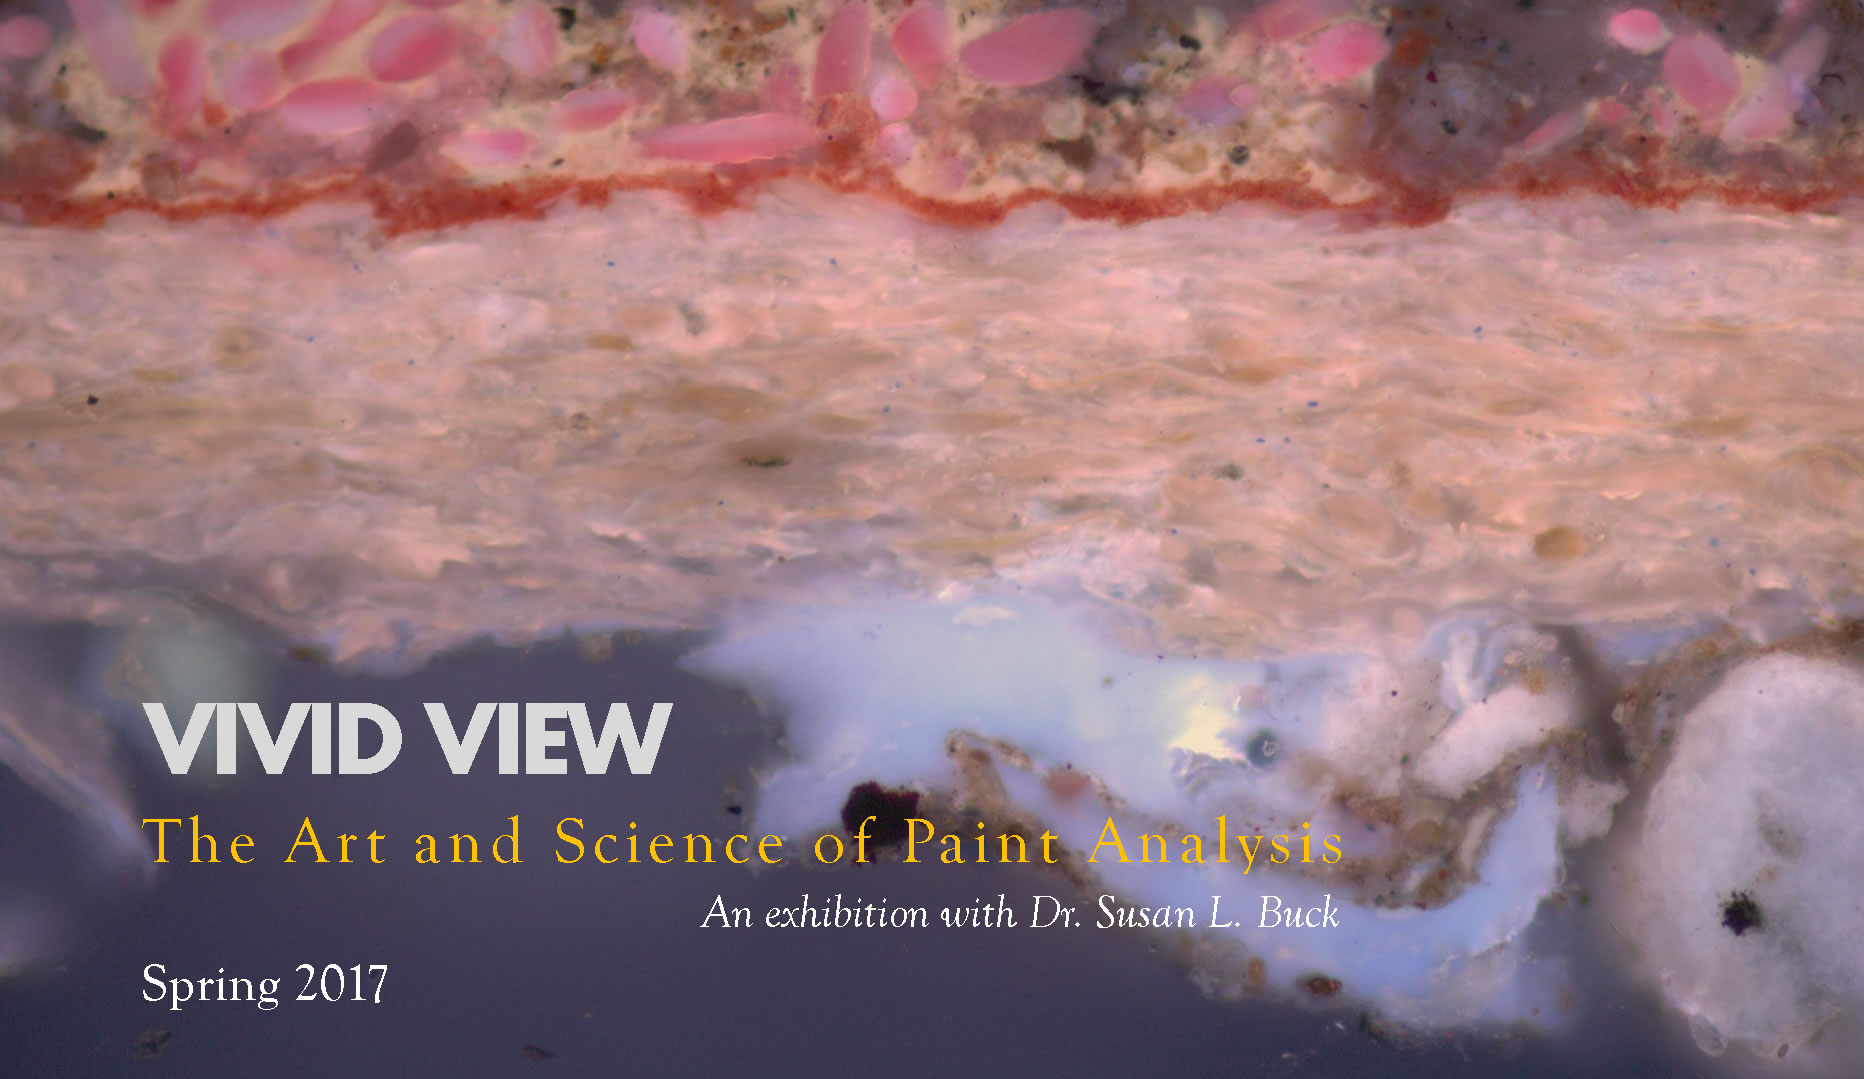 VIVID VIEW: The Art and Science of Paint Analysis - Wilton House Museum